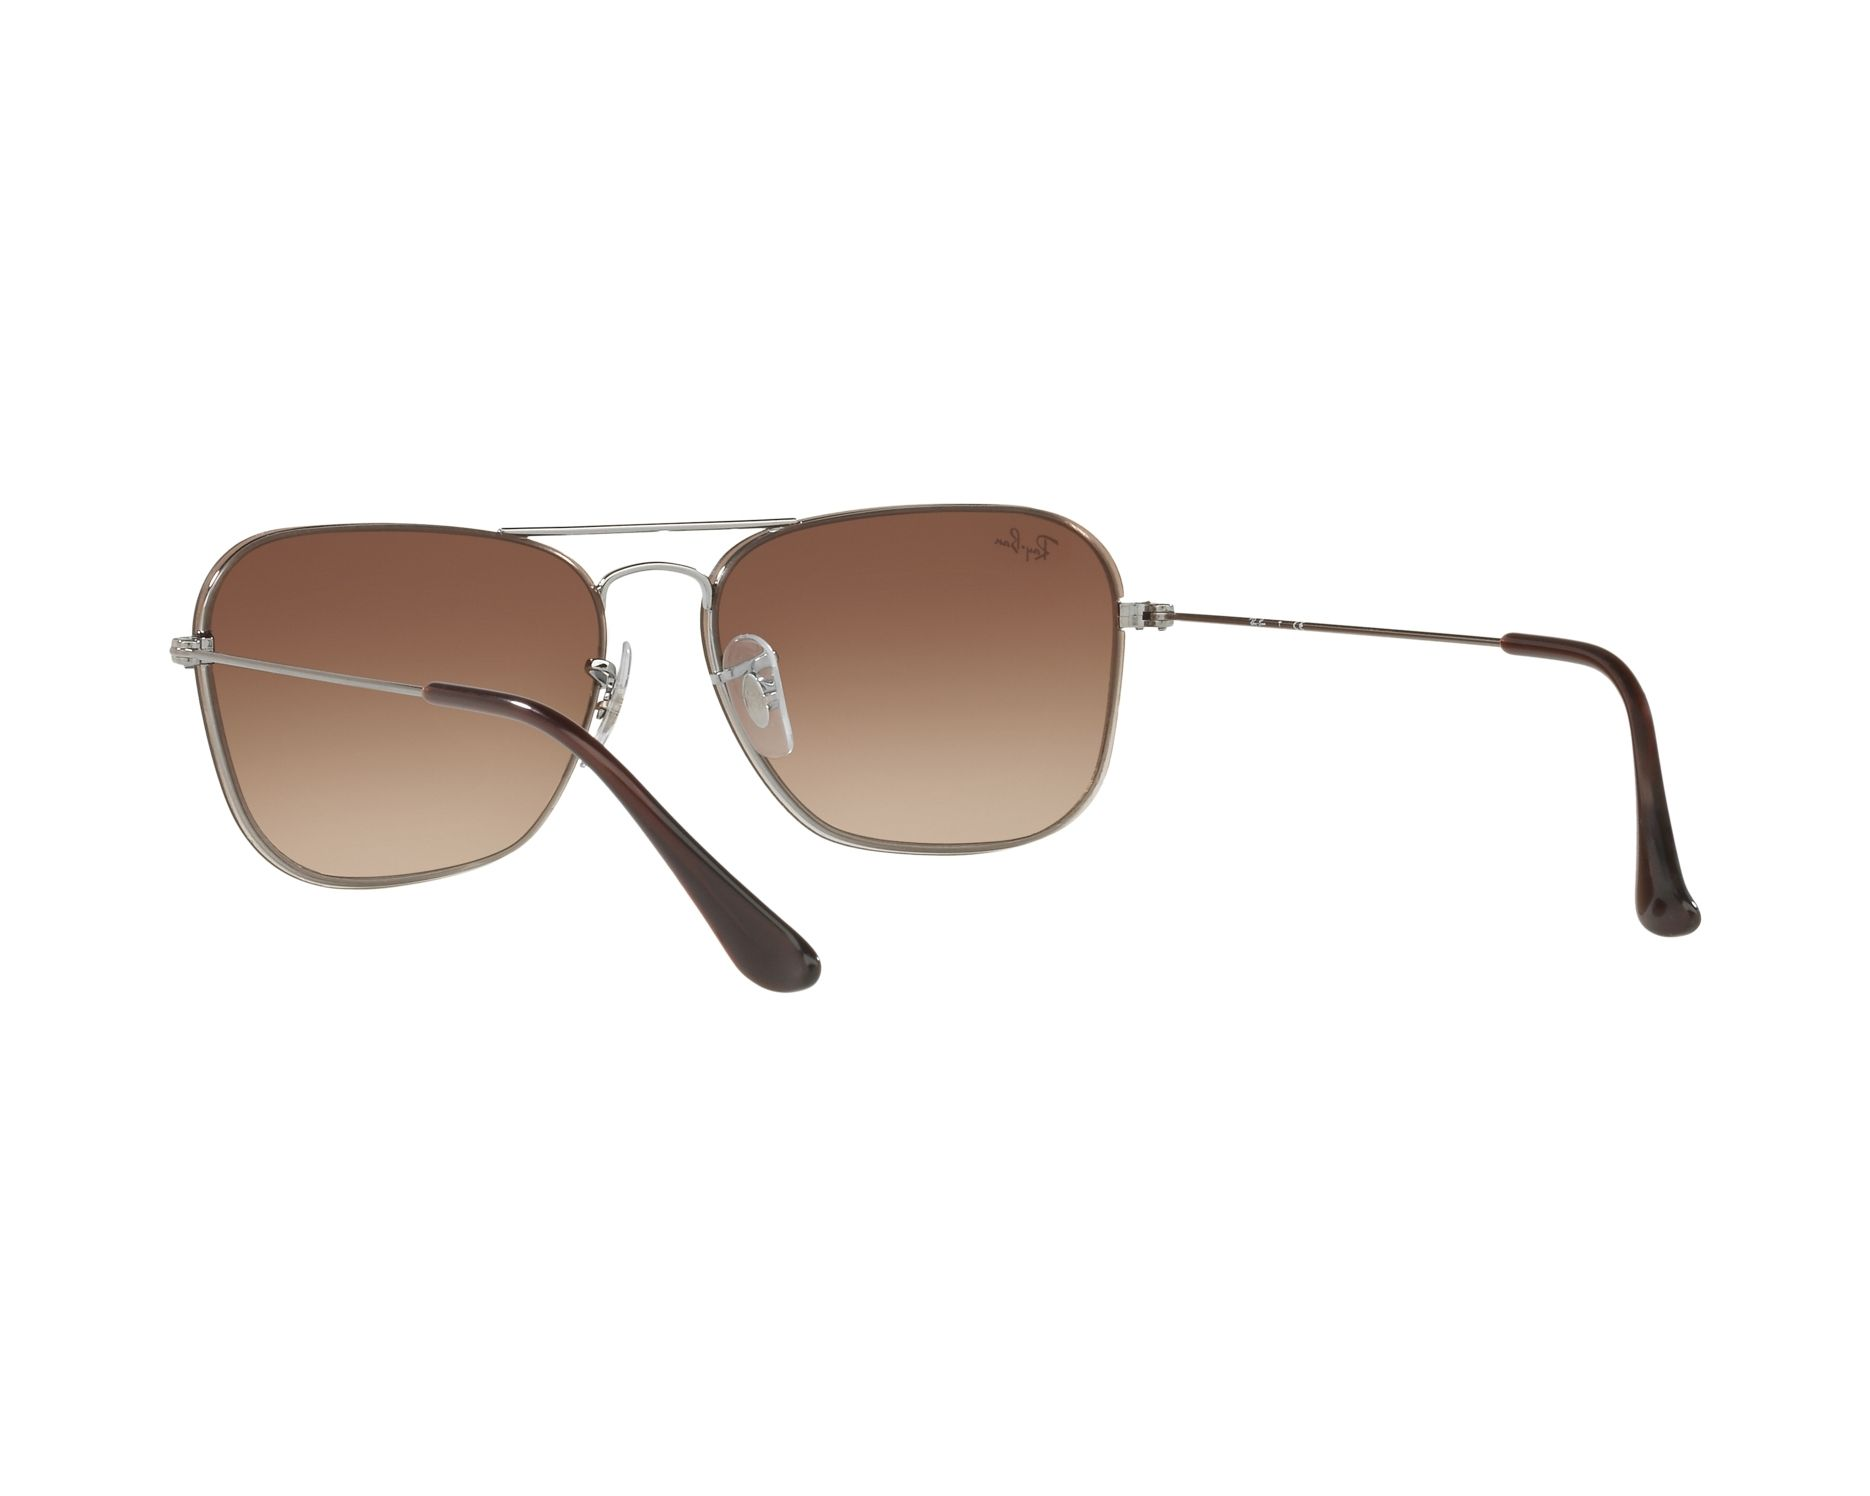 efb1bc6faced7 Sunglasses Ray-Ban RB-3603 004 13 56-14 Gun 360 degree